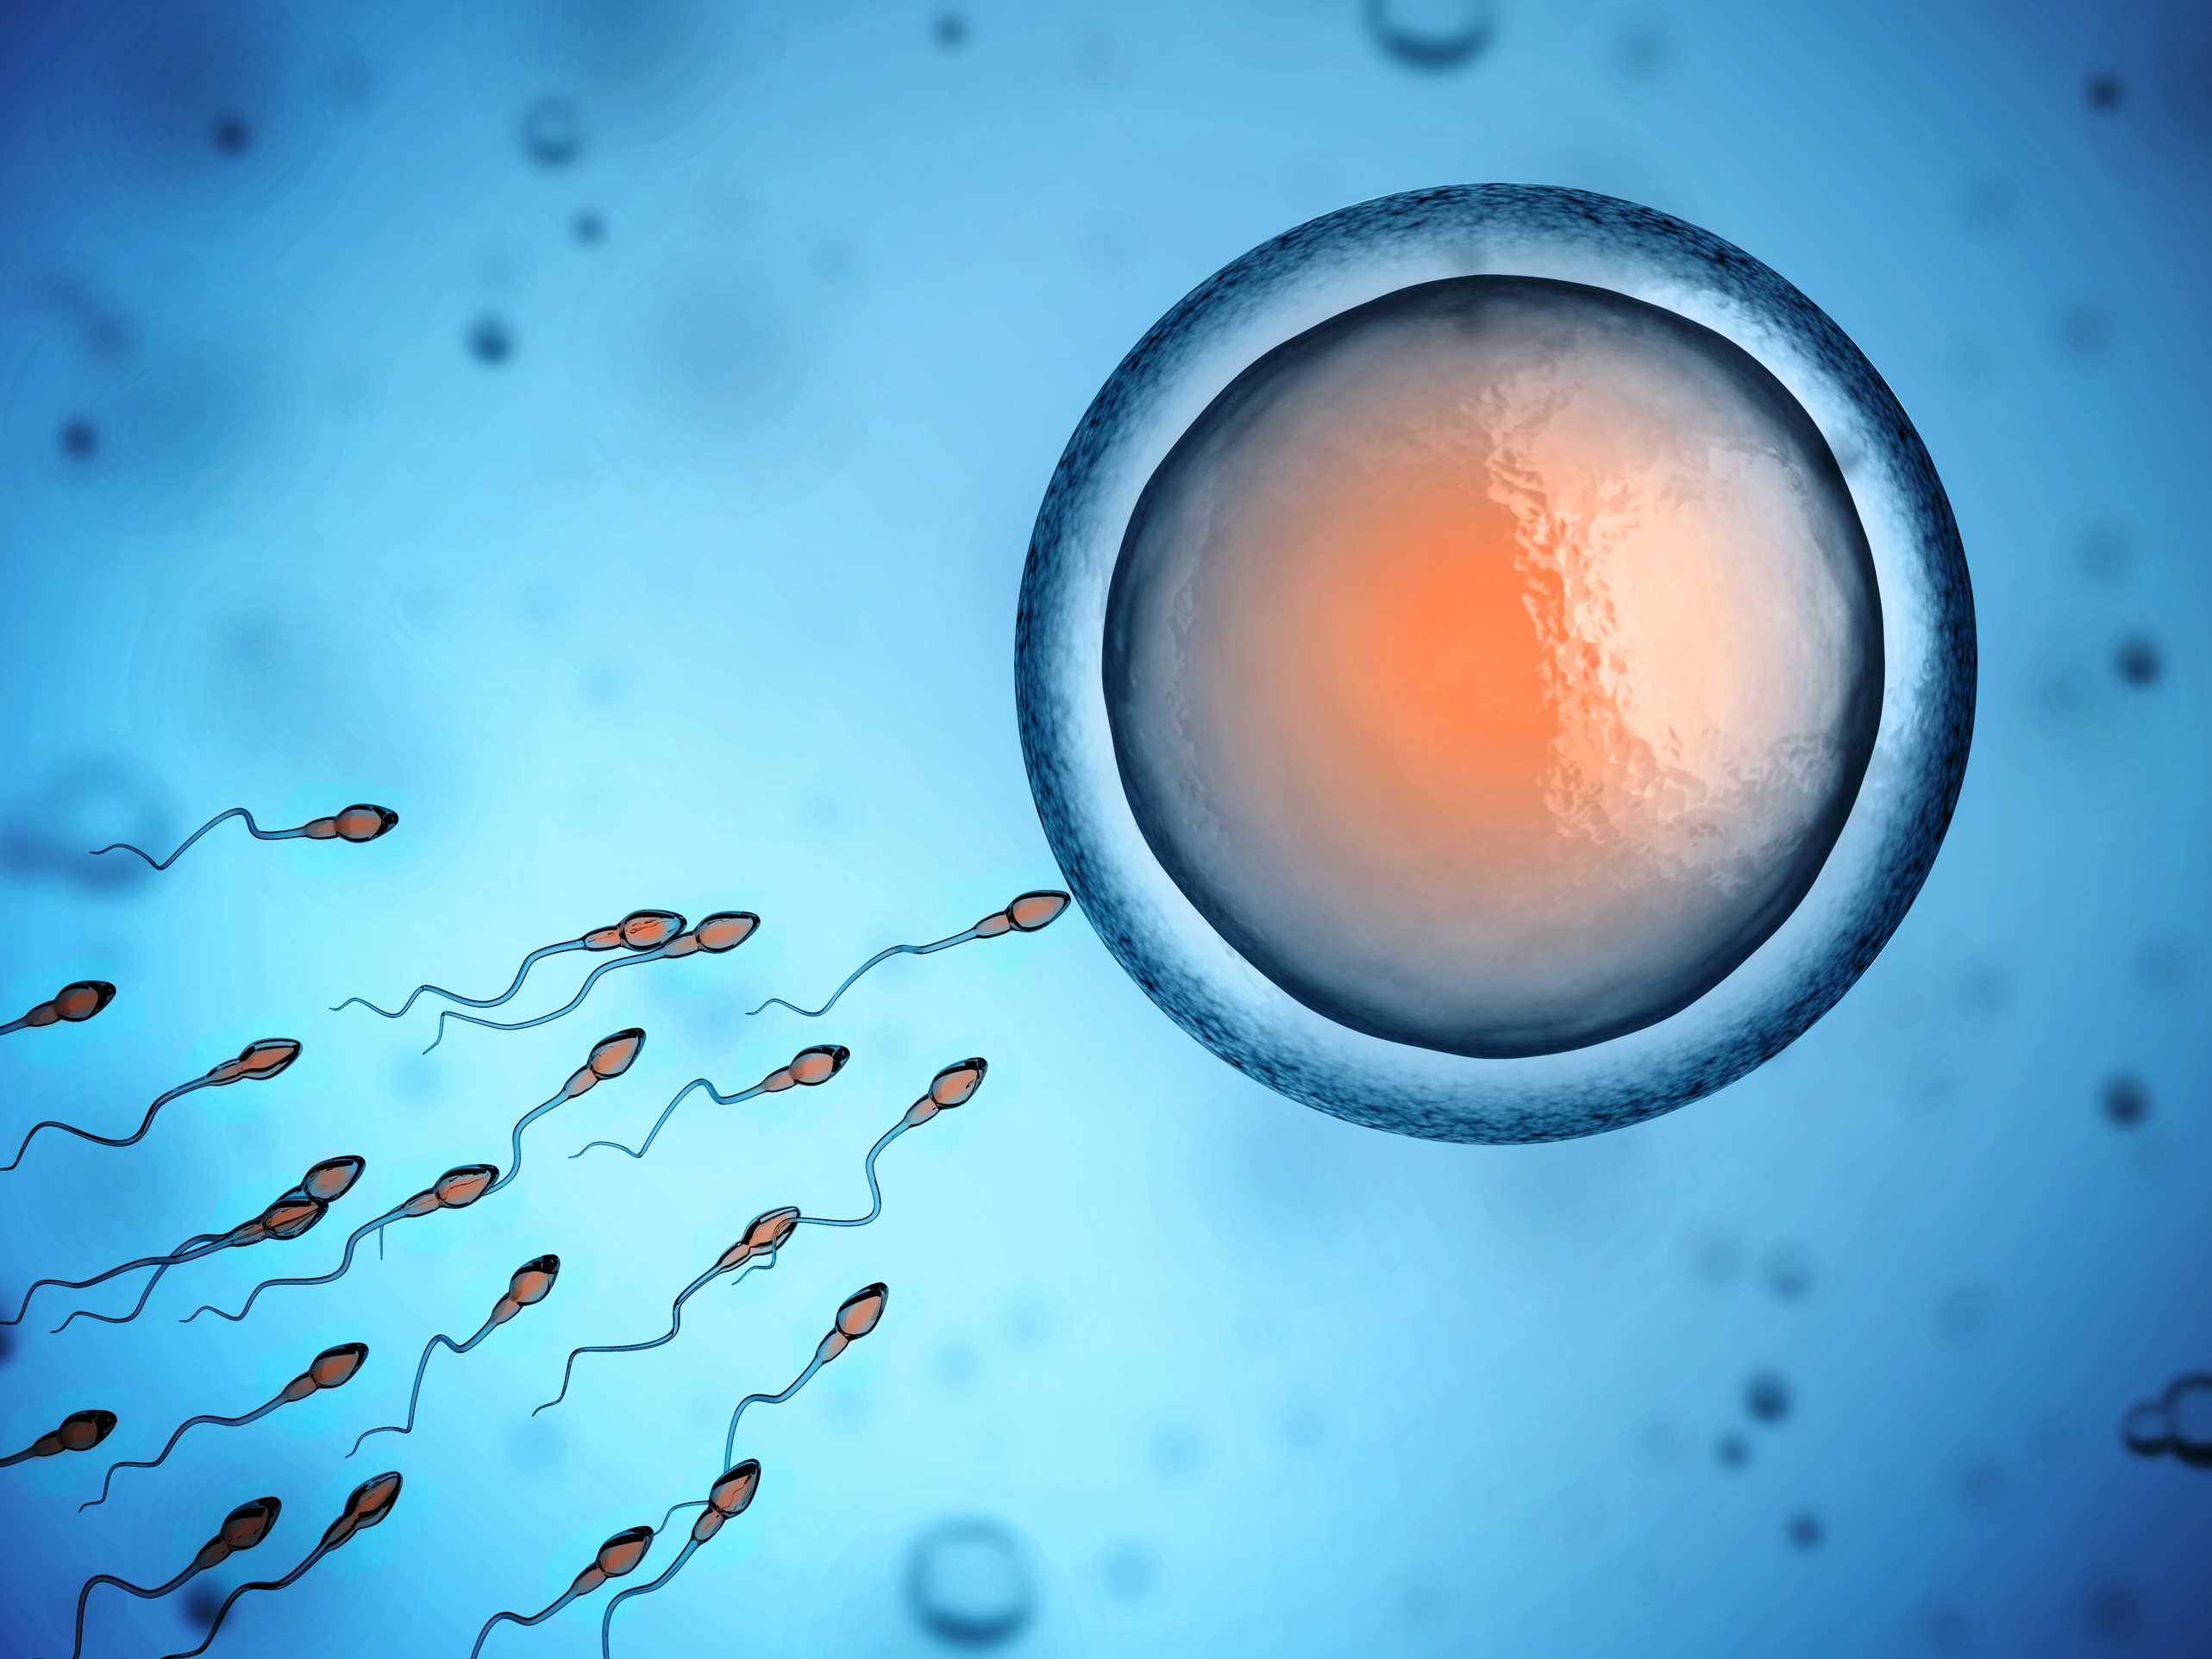 Human sperm and egg cell illustration.